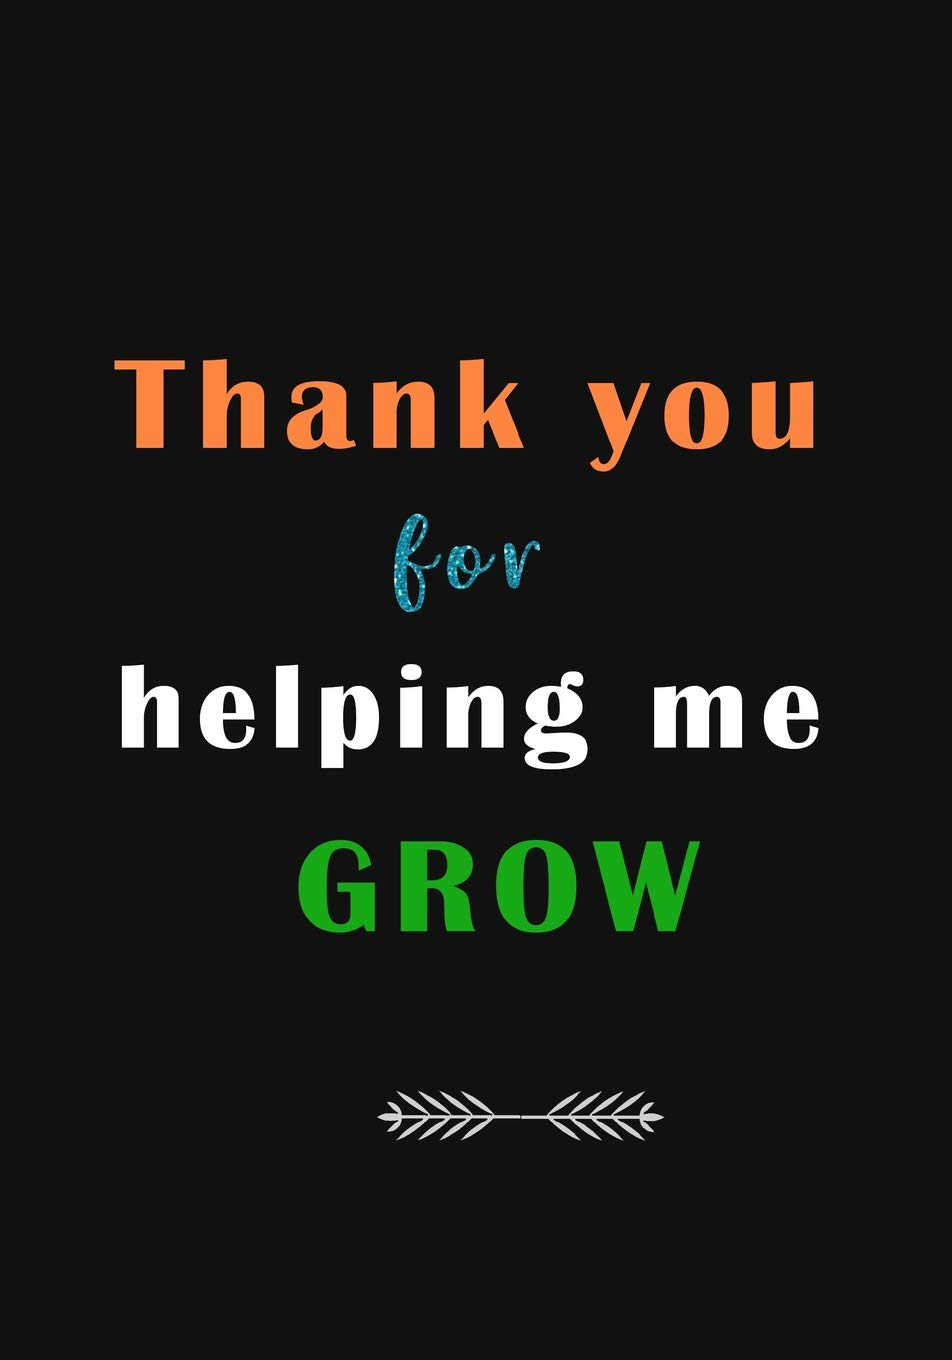 Amazon Com Thank You For Helping Me Grow A Journal Containing Popular Inspirational Quotes 9781719192170 Crafts Arts And Press Knowledge Print Books